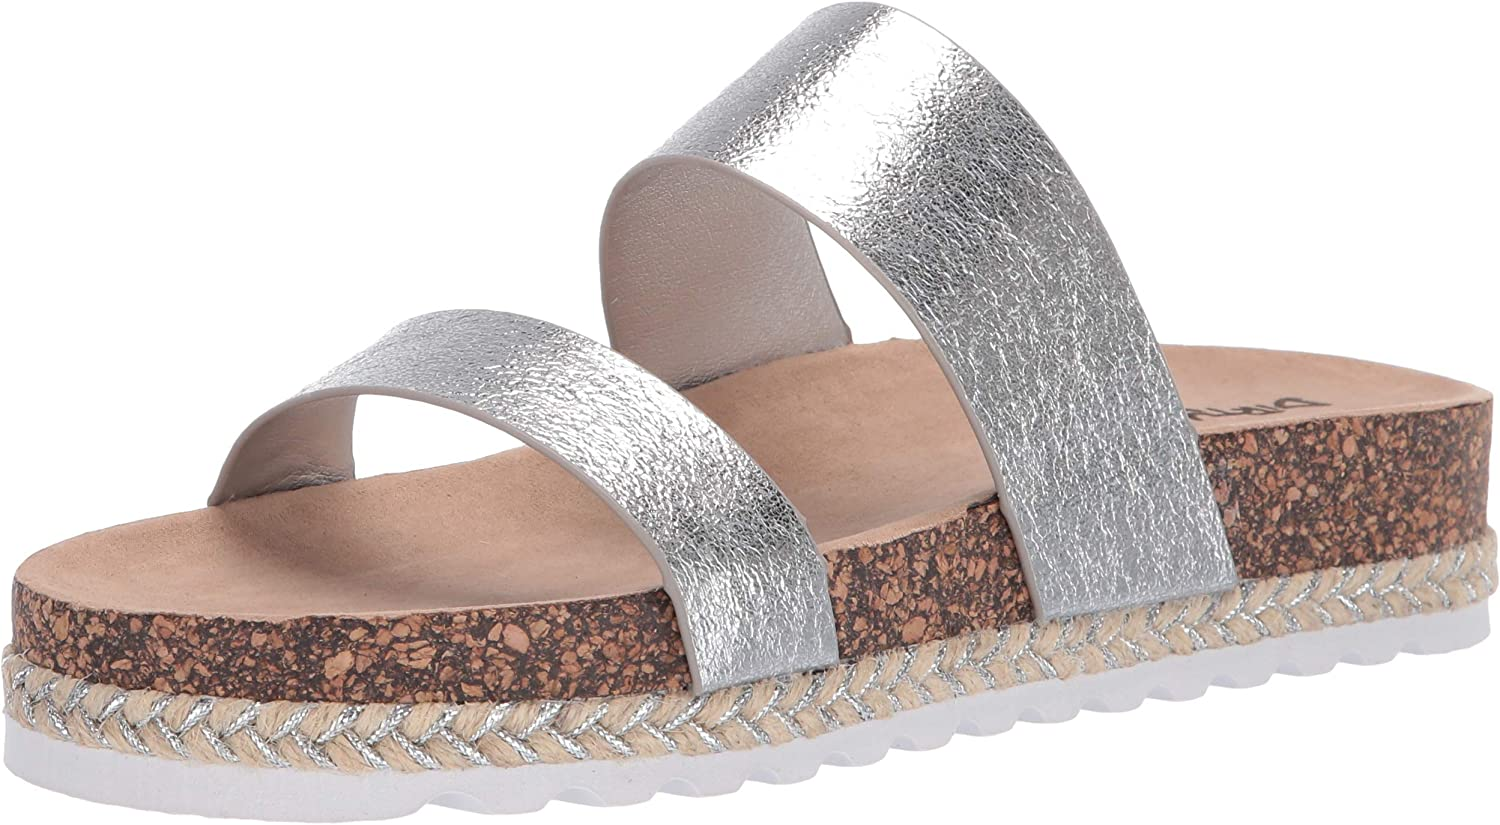 Dirty Laundry Women's Double Play Slide Sandal